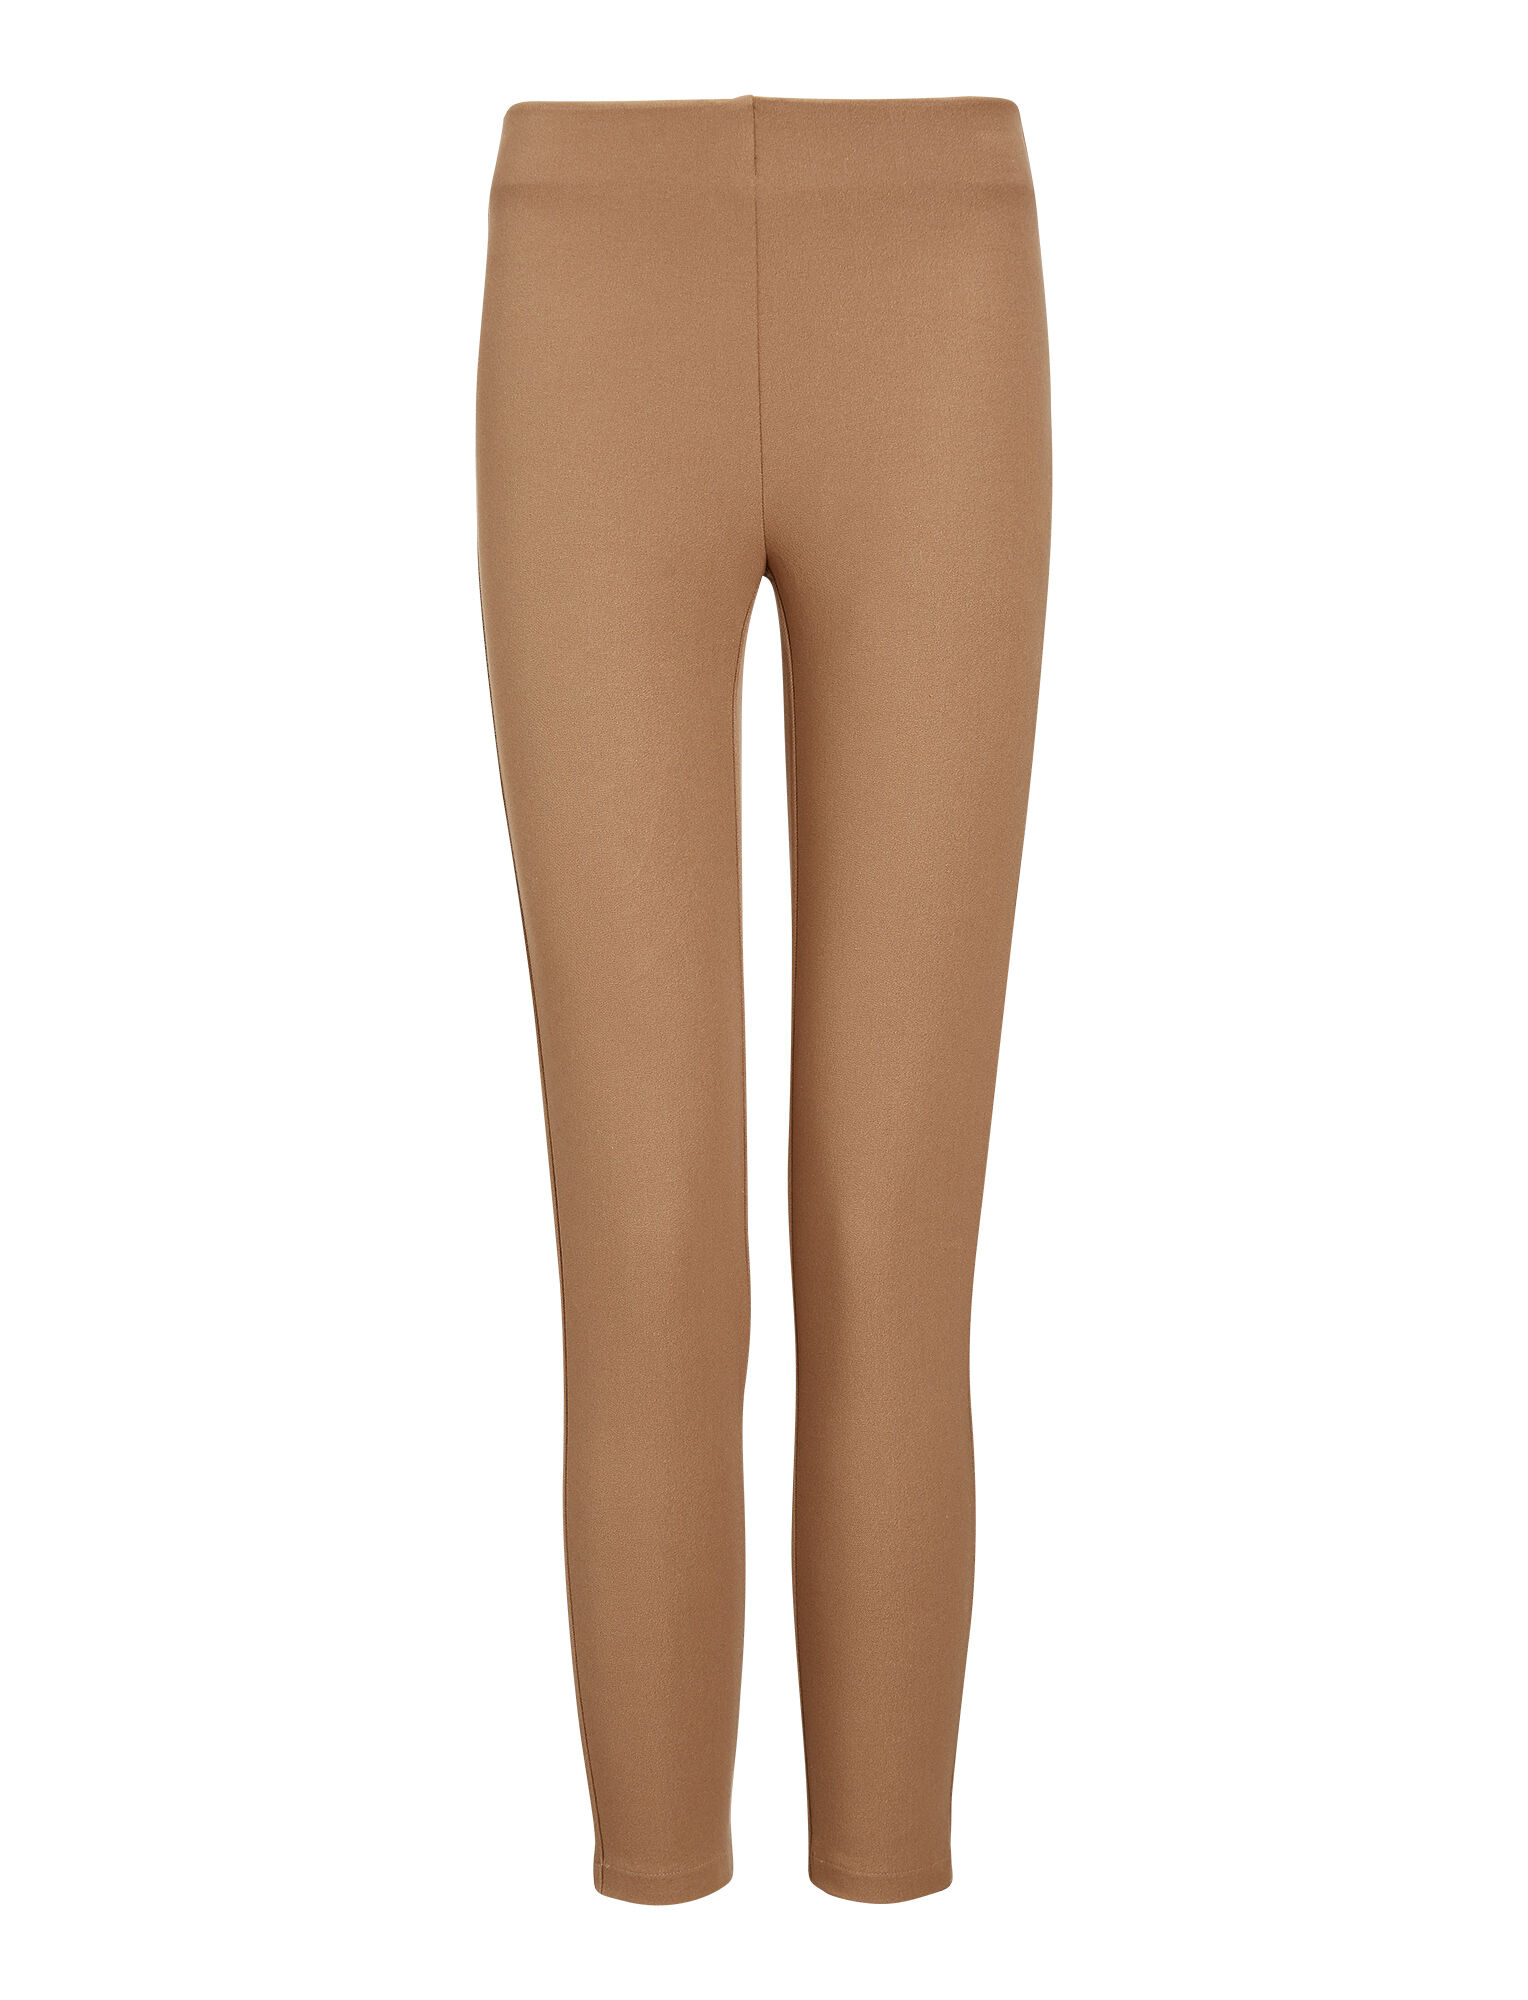 Joseph, Nitro Gabardine Stretch Leggings, in COFFEE